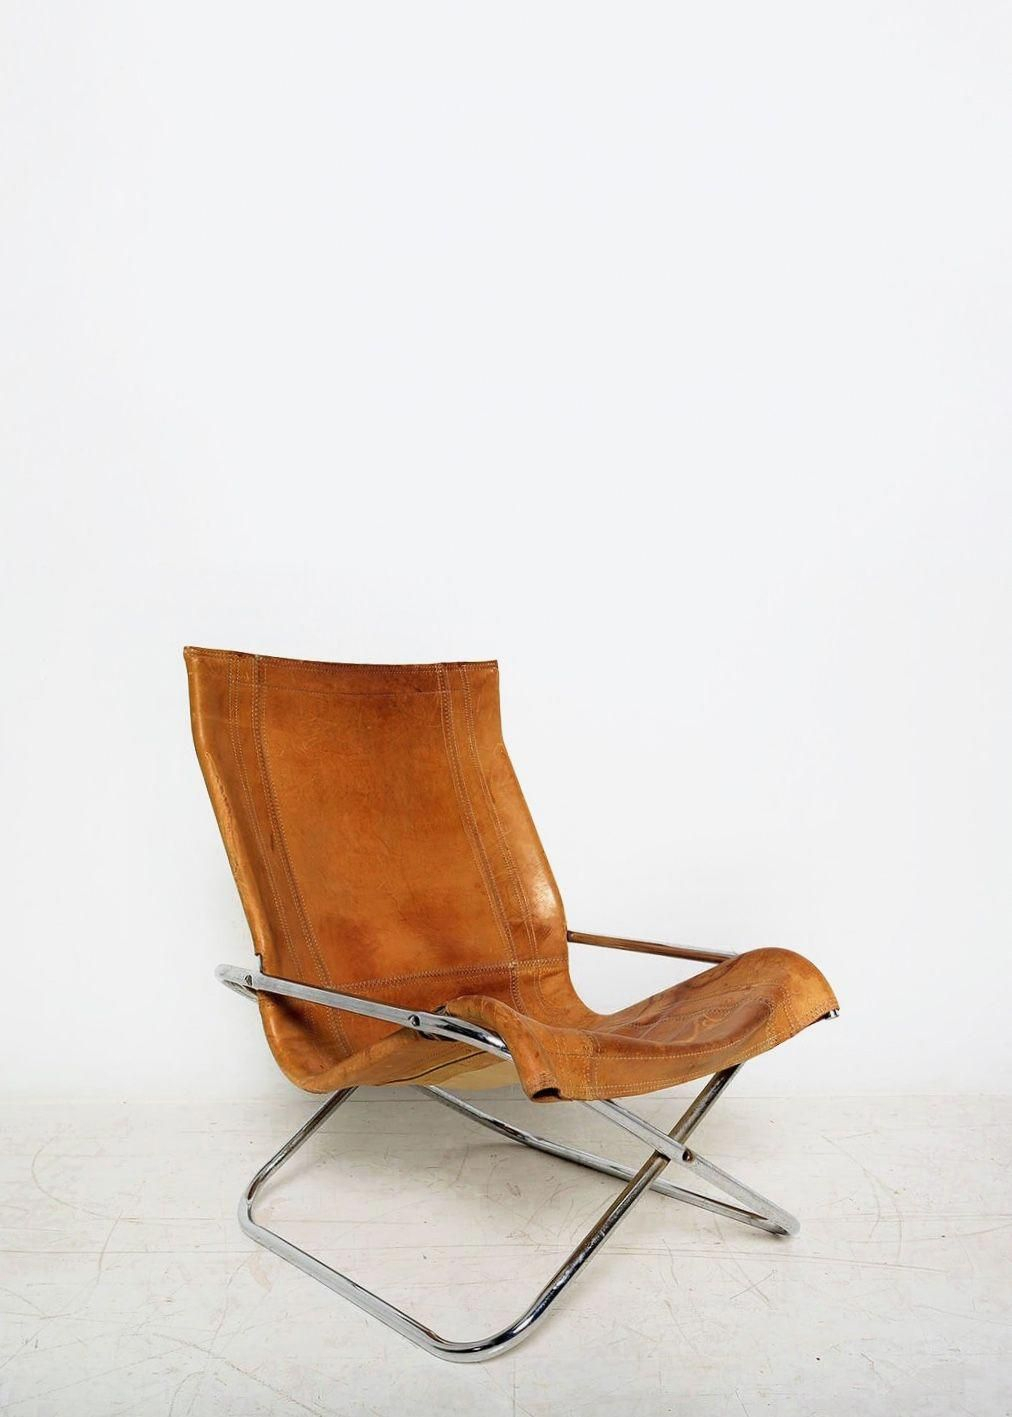 Takeshi Nii Folding Chair 1960's #smallfoldingchair | Chair In Ames Arm Sofa Chairs (View 23 of 25)